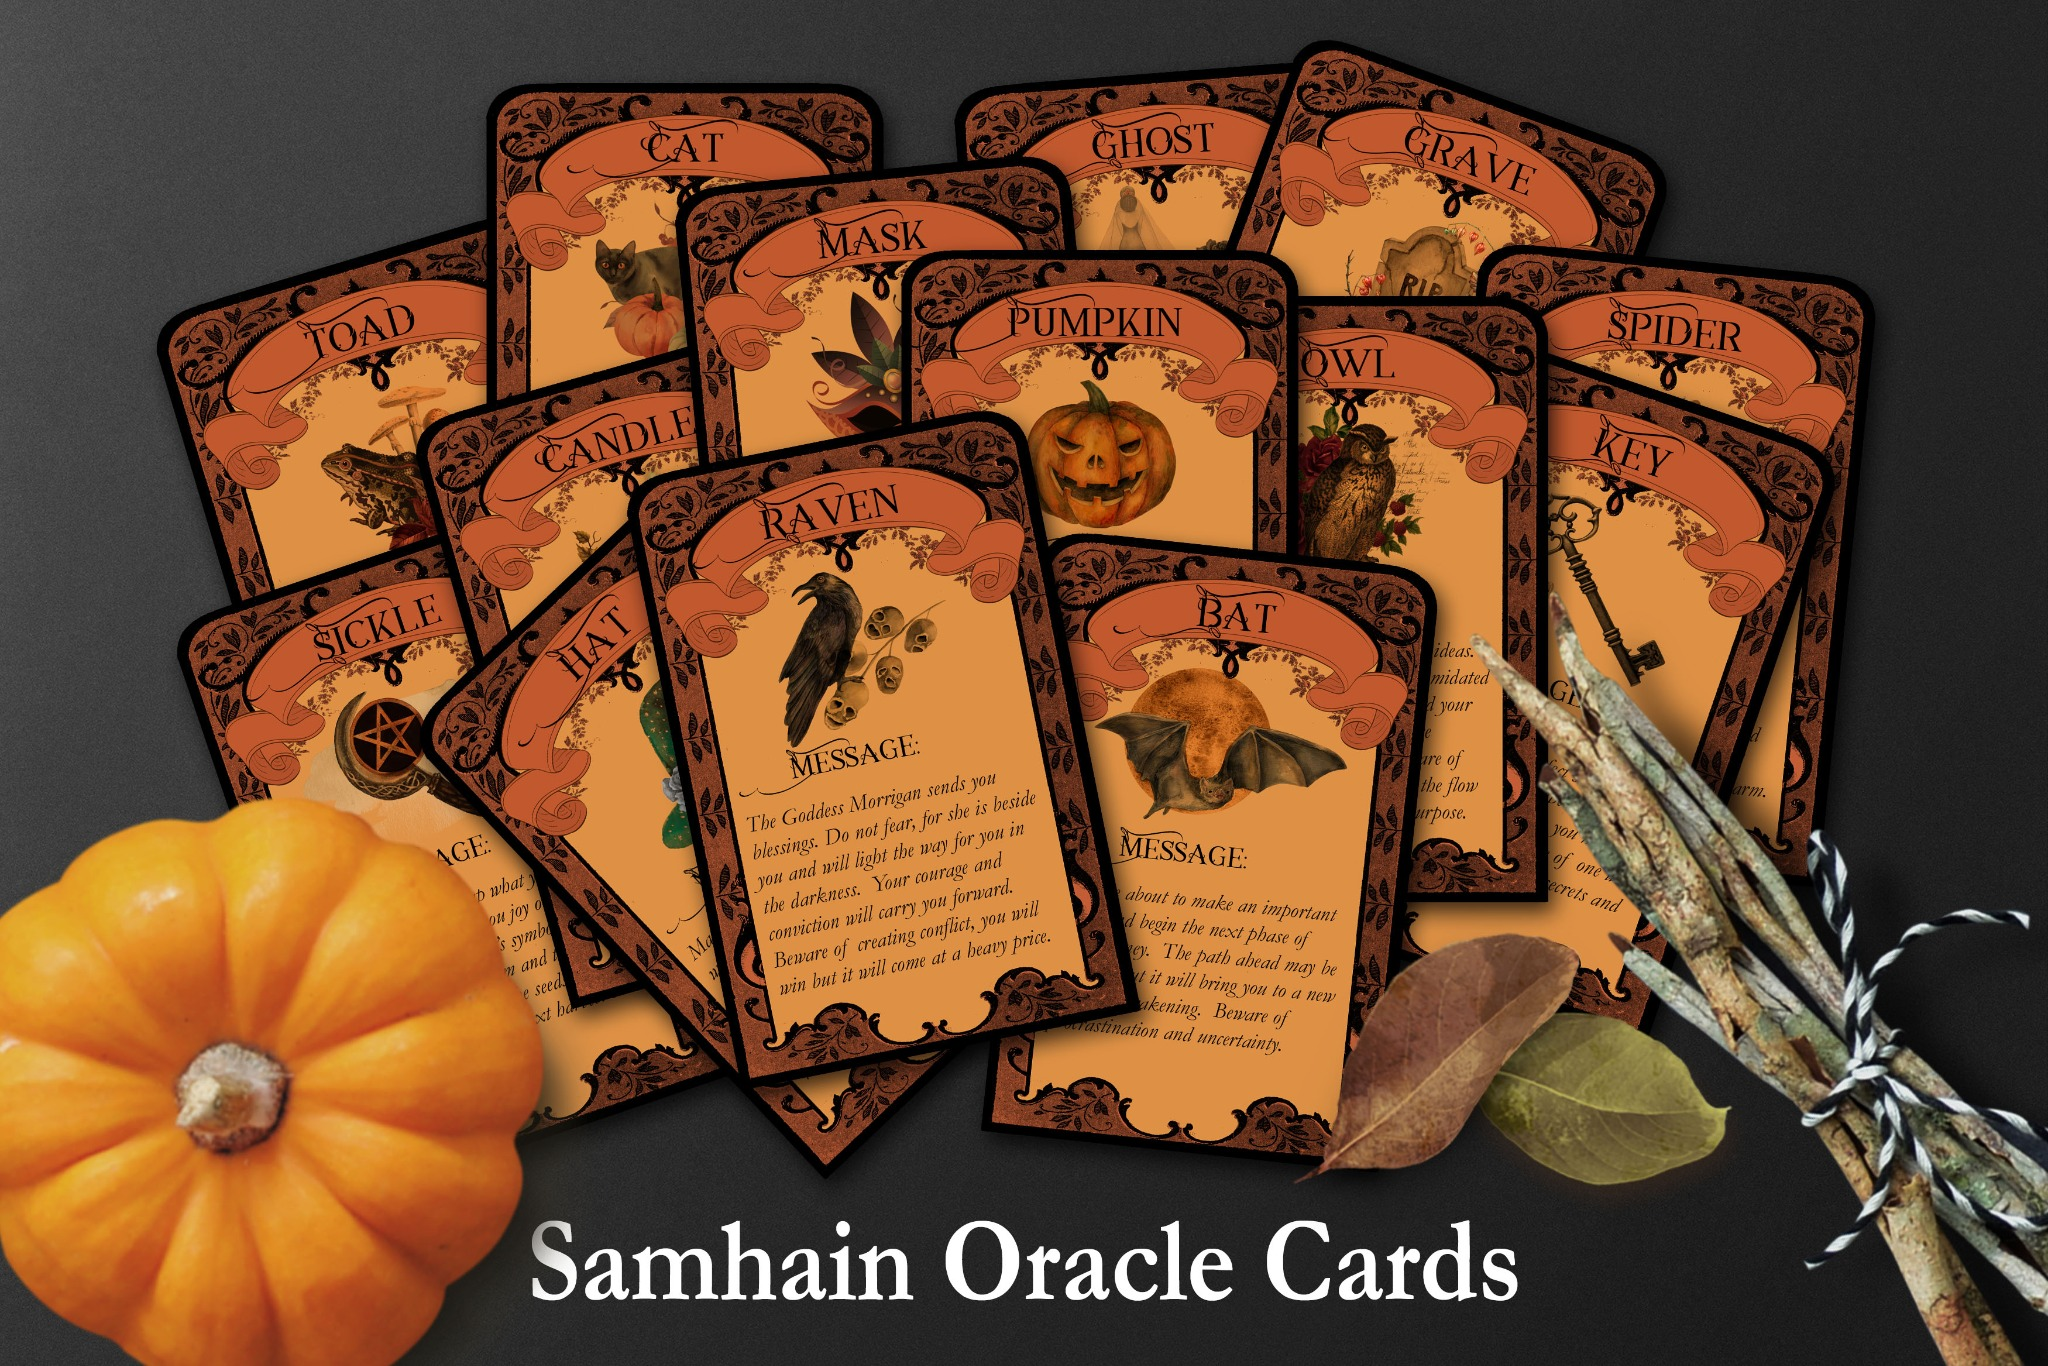 SAMHAIN ORACLE CARDS   Tarot Cards to Print at Home